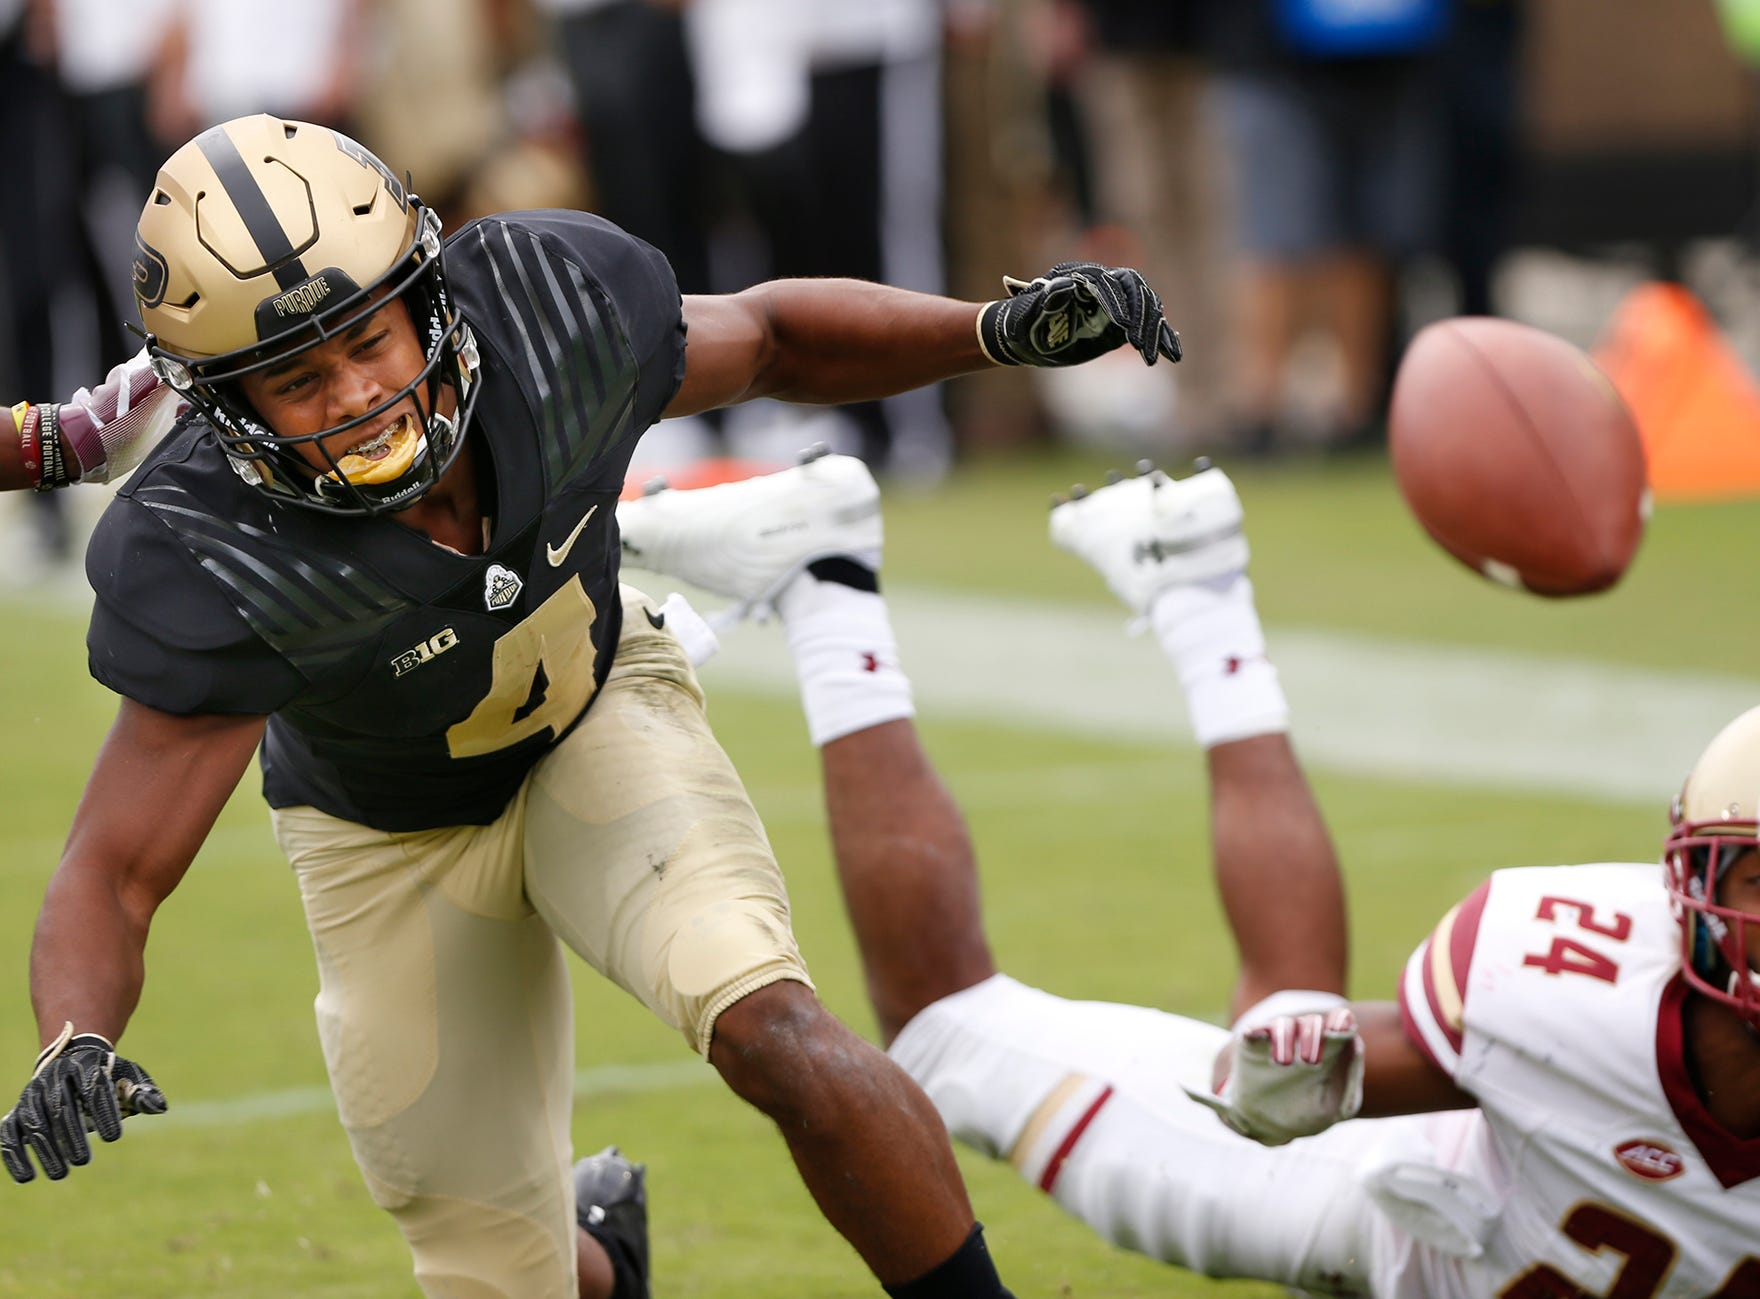 Rondale Moore of Purdue can't come up with the catch on a pass in the second quarter against Boston College Saturday, September 22, 2018, in Ross-Ade Stadium. Purdue defeated Boston College 30-13.